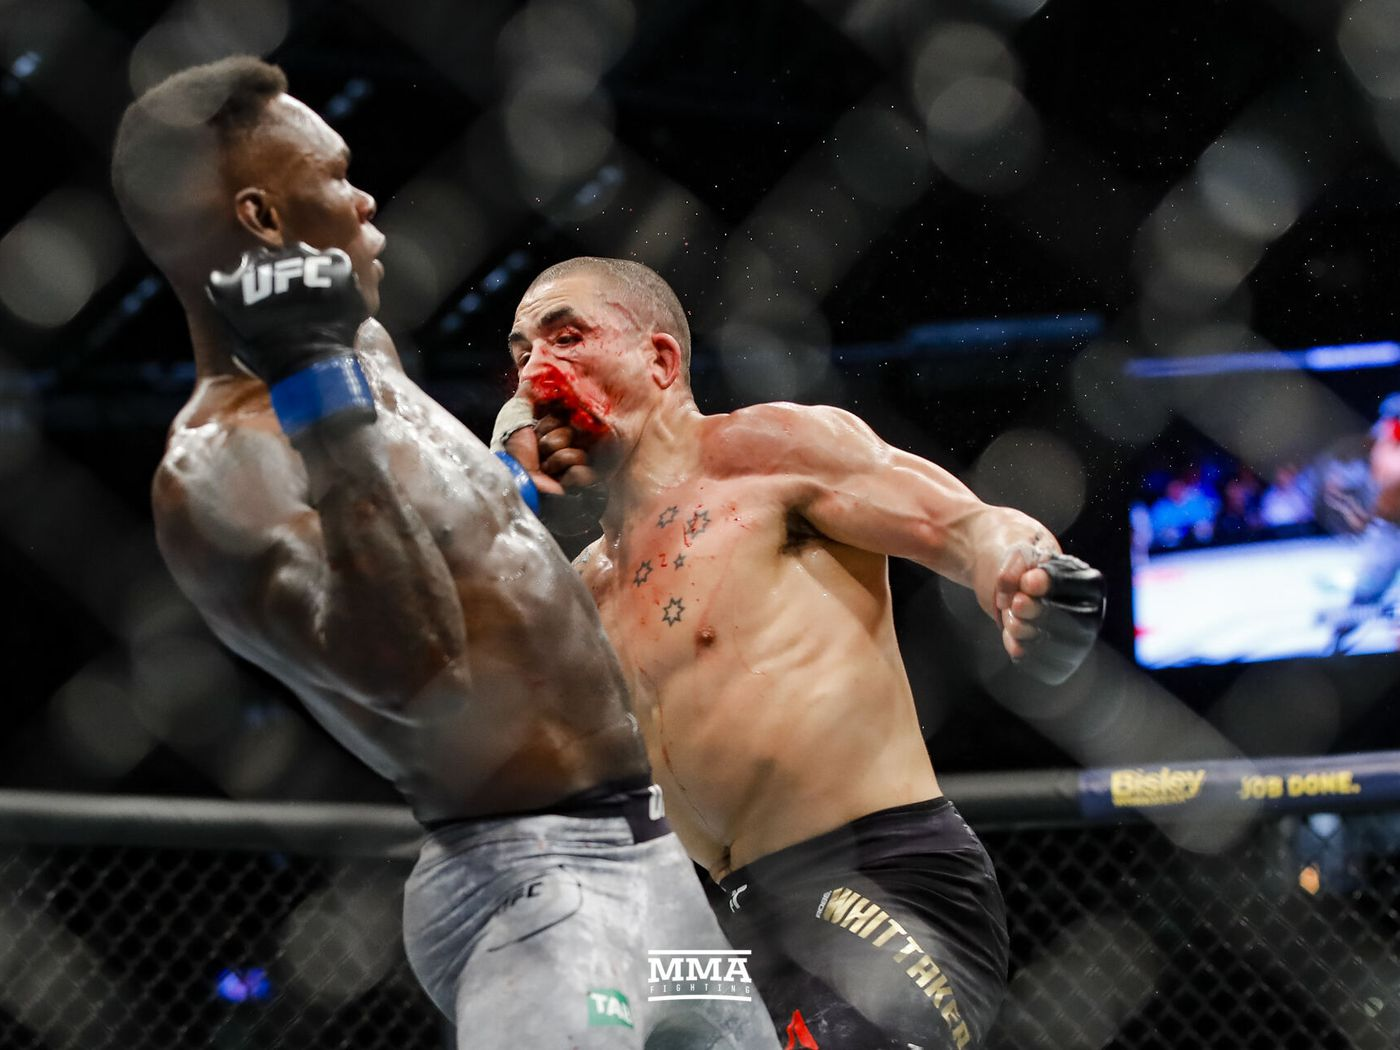 UFC 243 results: Israel Adesanya flattens Robert Whittaker to become undisputed middleweight champion - MMA Fighting